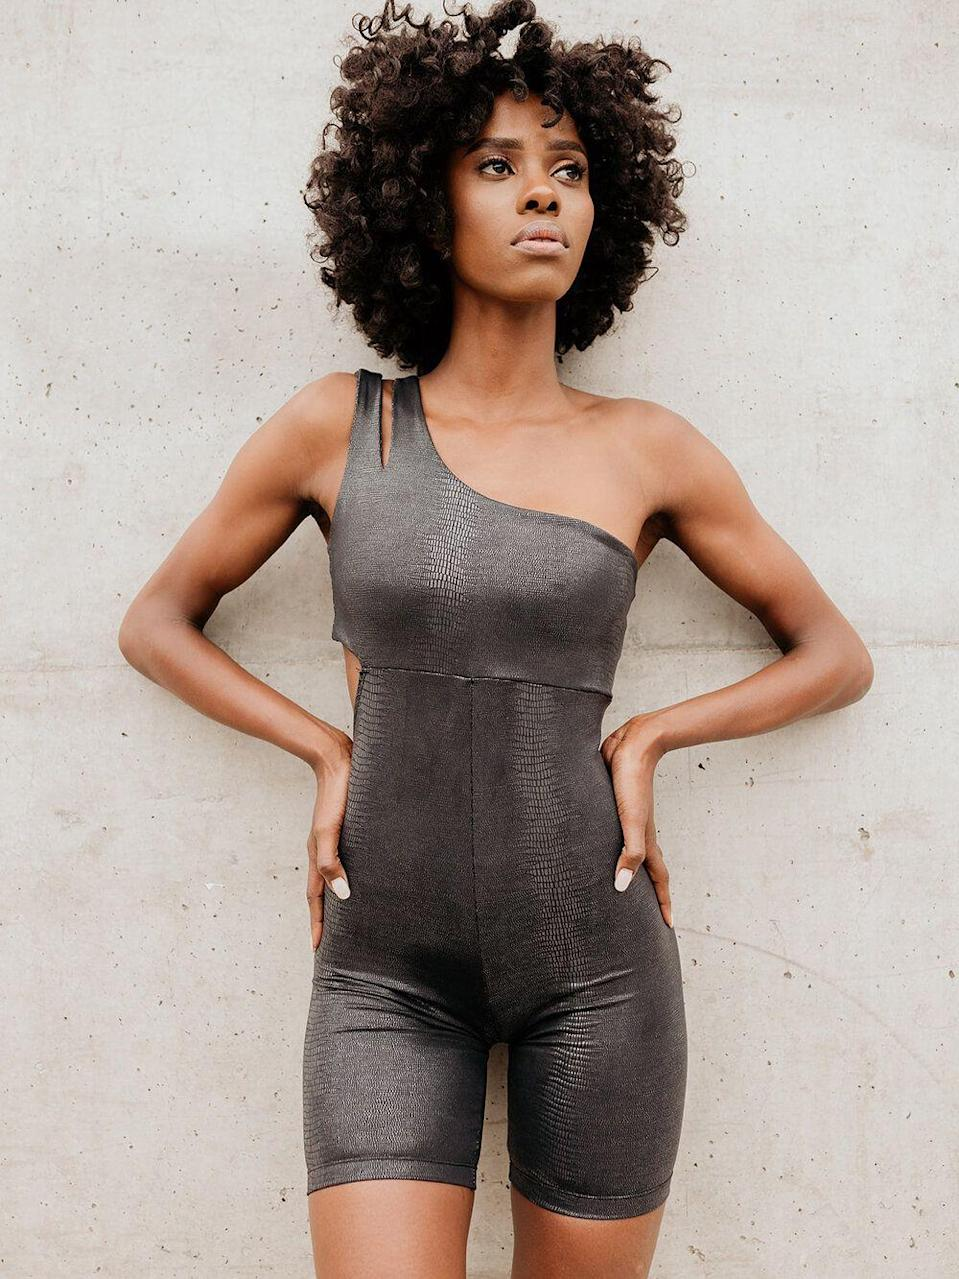 "<p>mysolelyfit.com</p><p><strong>$110.00</strong></p><p><a href=""https://www.mysolelyfit.com/black-collection/nzinga-bodysuit"" rel=""nofollow noopener"" target=""_blank"" data-ylk=""slk:Shop Now"" class=""link rapid-noclick-resp"">Shop Now</a></p>"